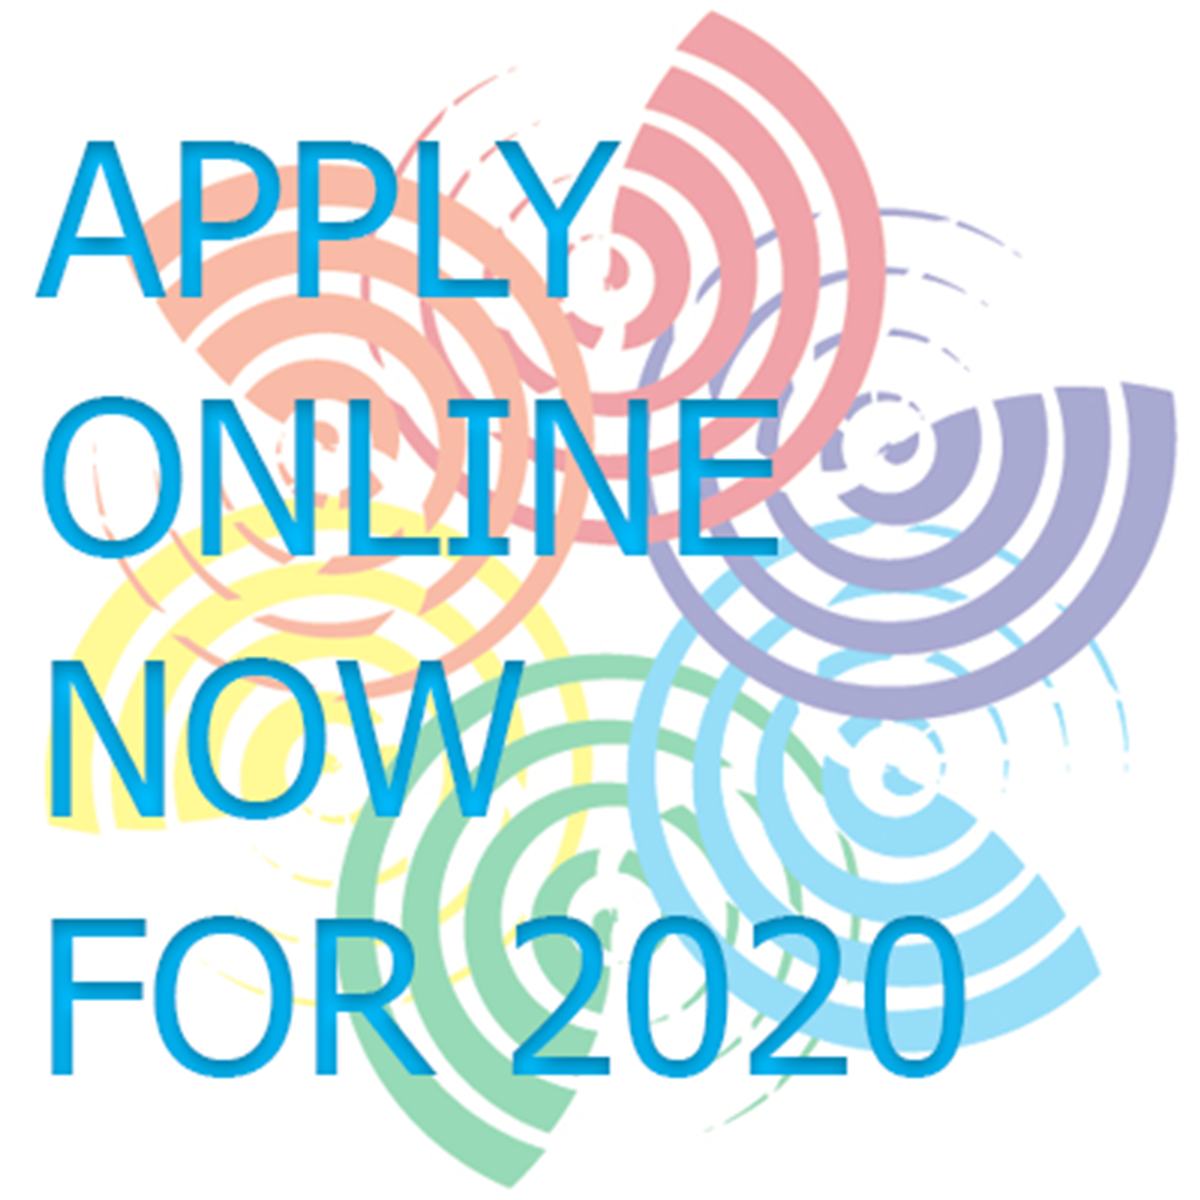 We are delighted to announce that we are now accepting applications for courses starting in September 2020.